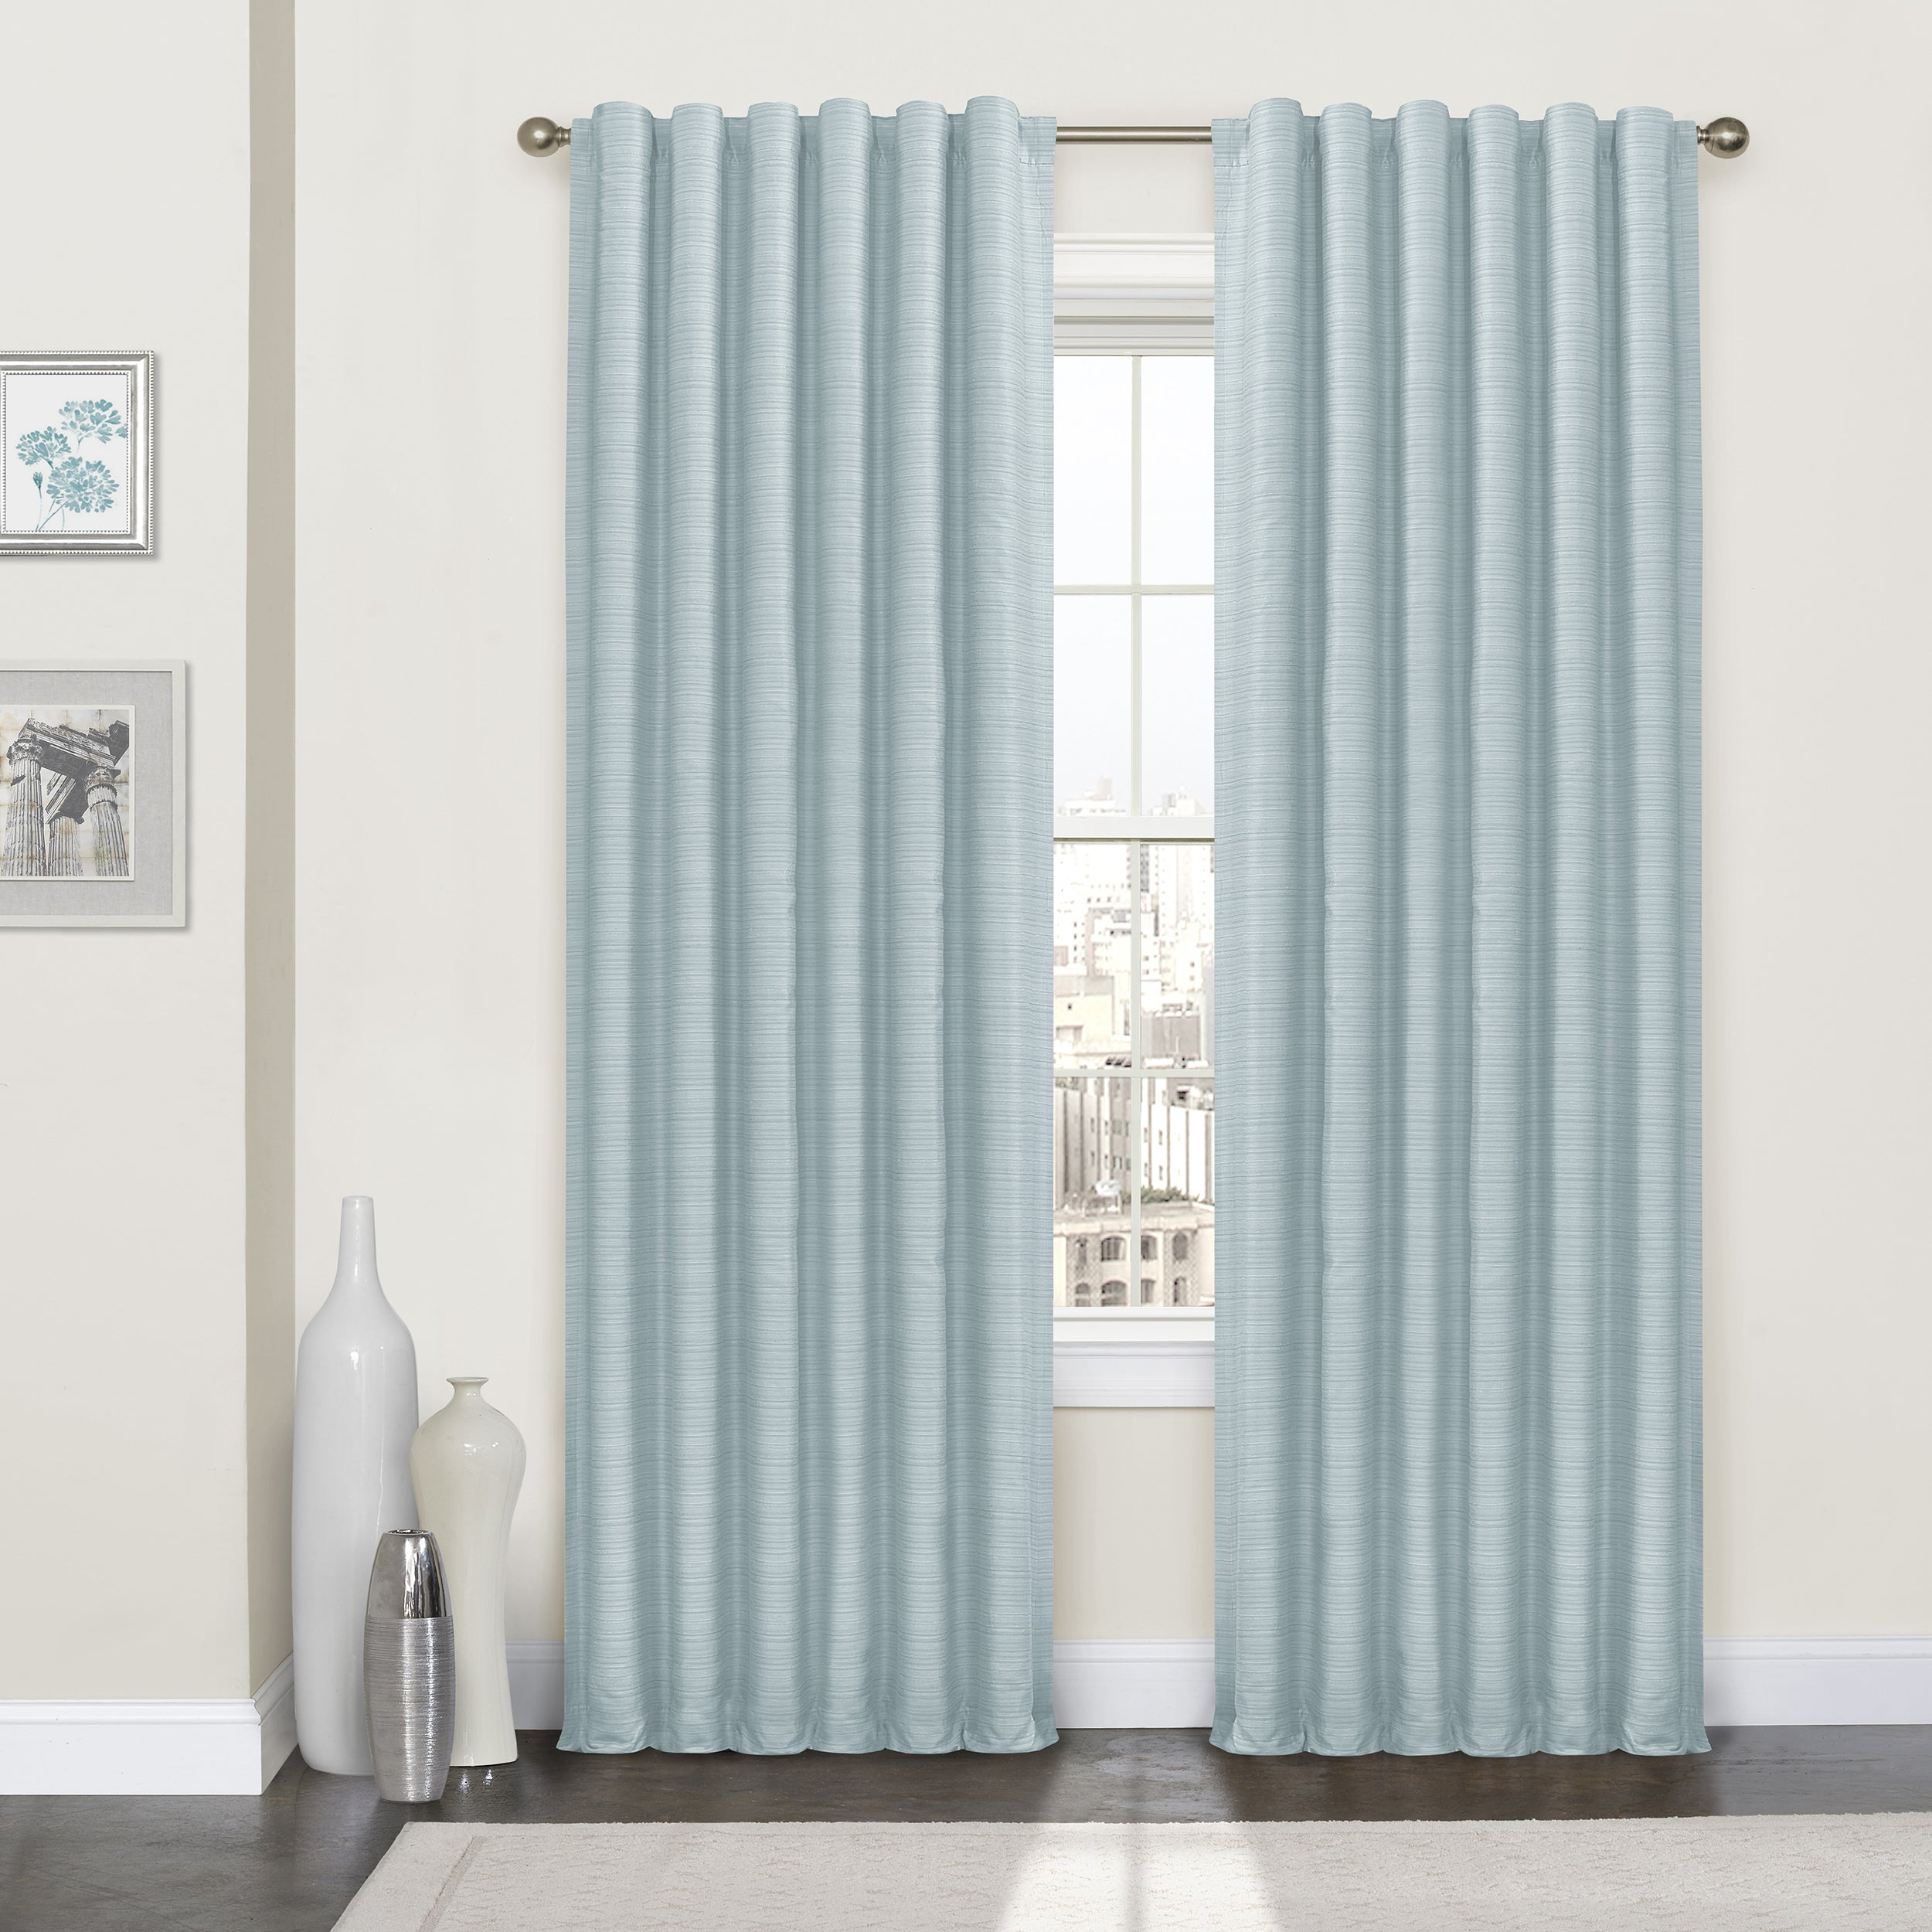 Eclipse Lindstrom Thermalayer Curtain Panel (52X95 - Marb...